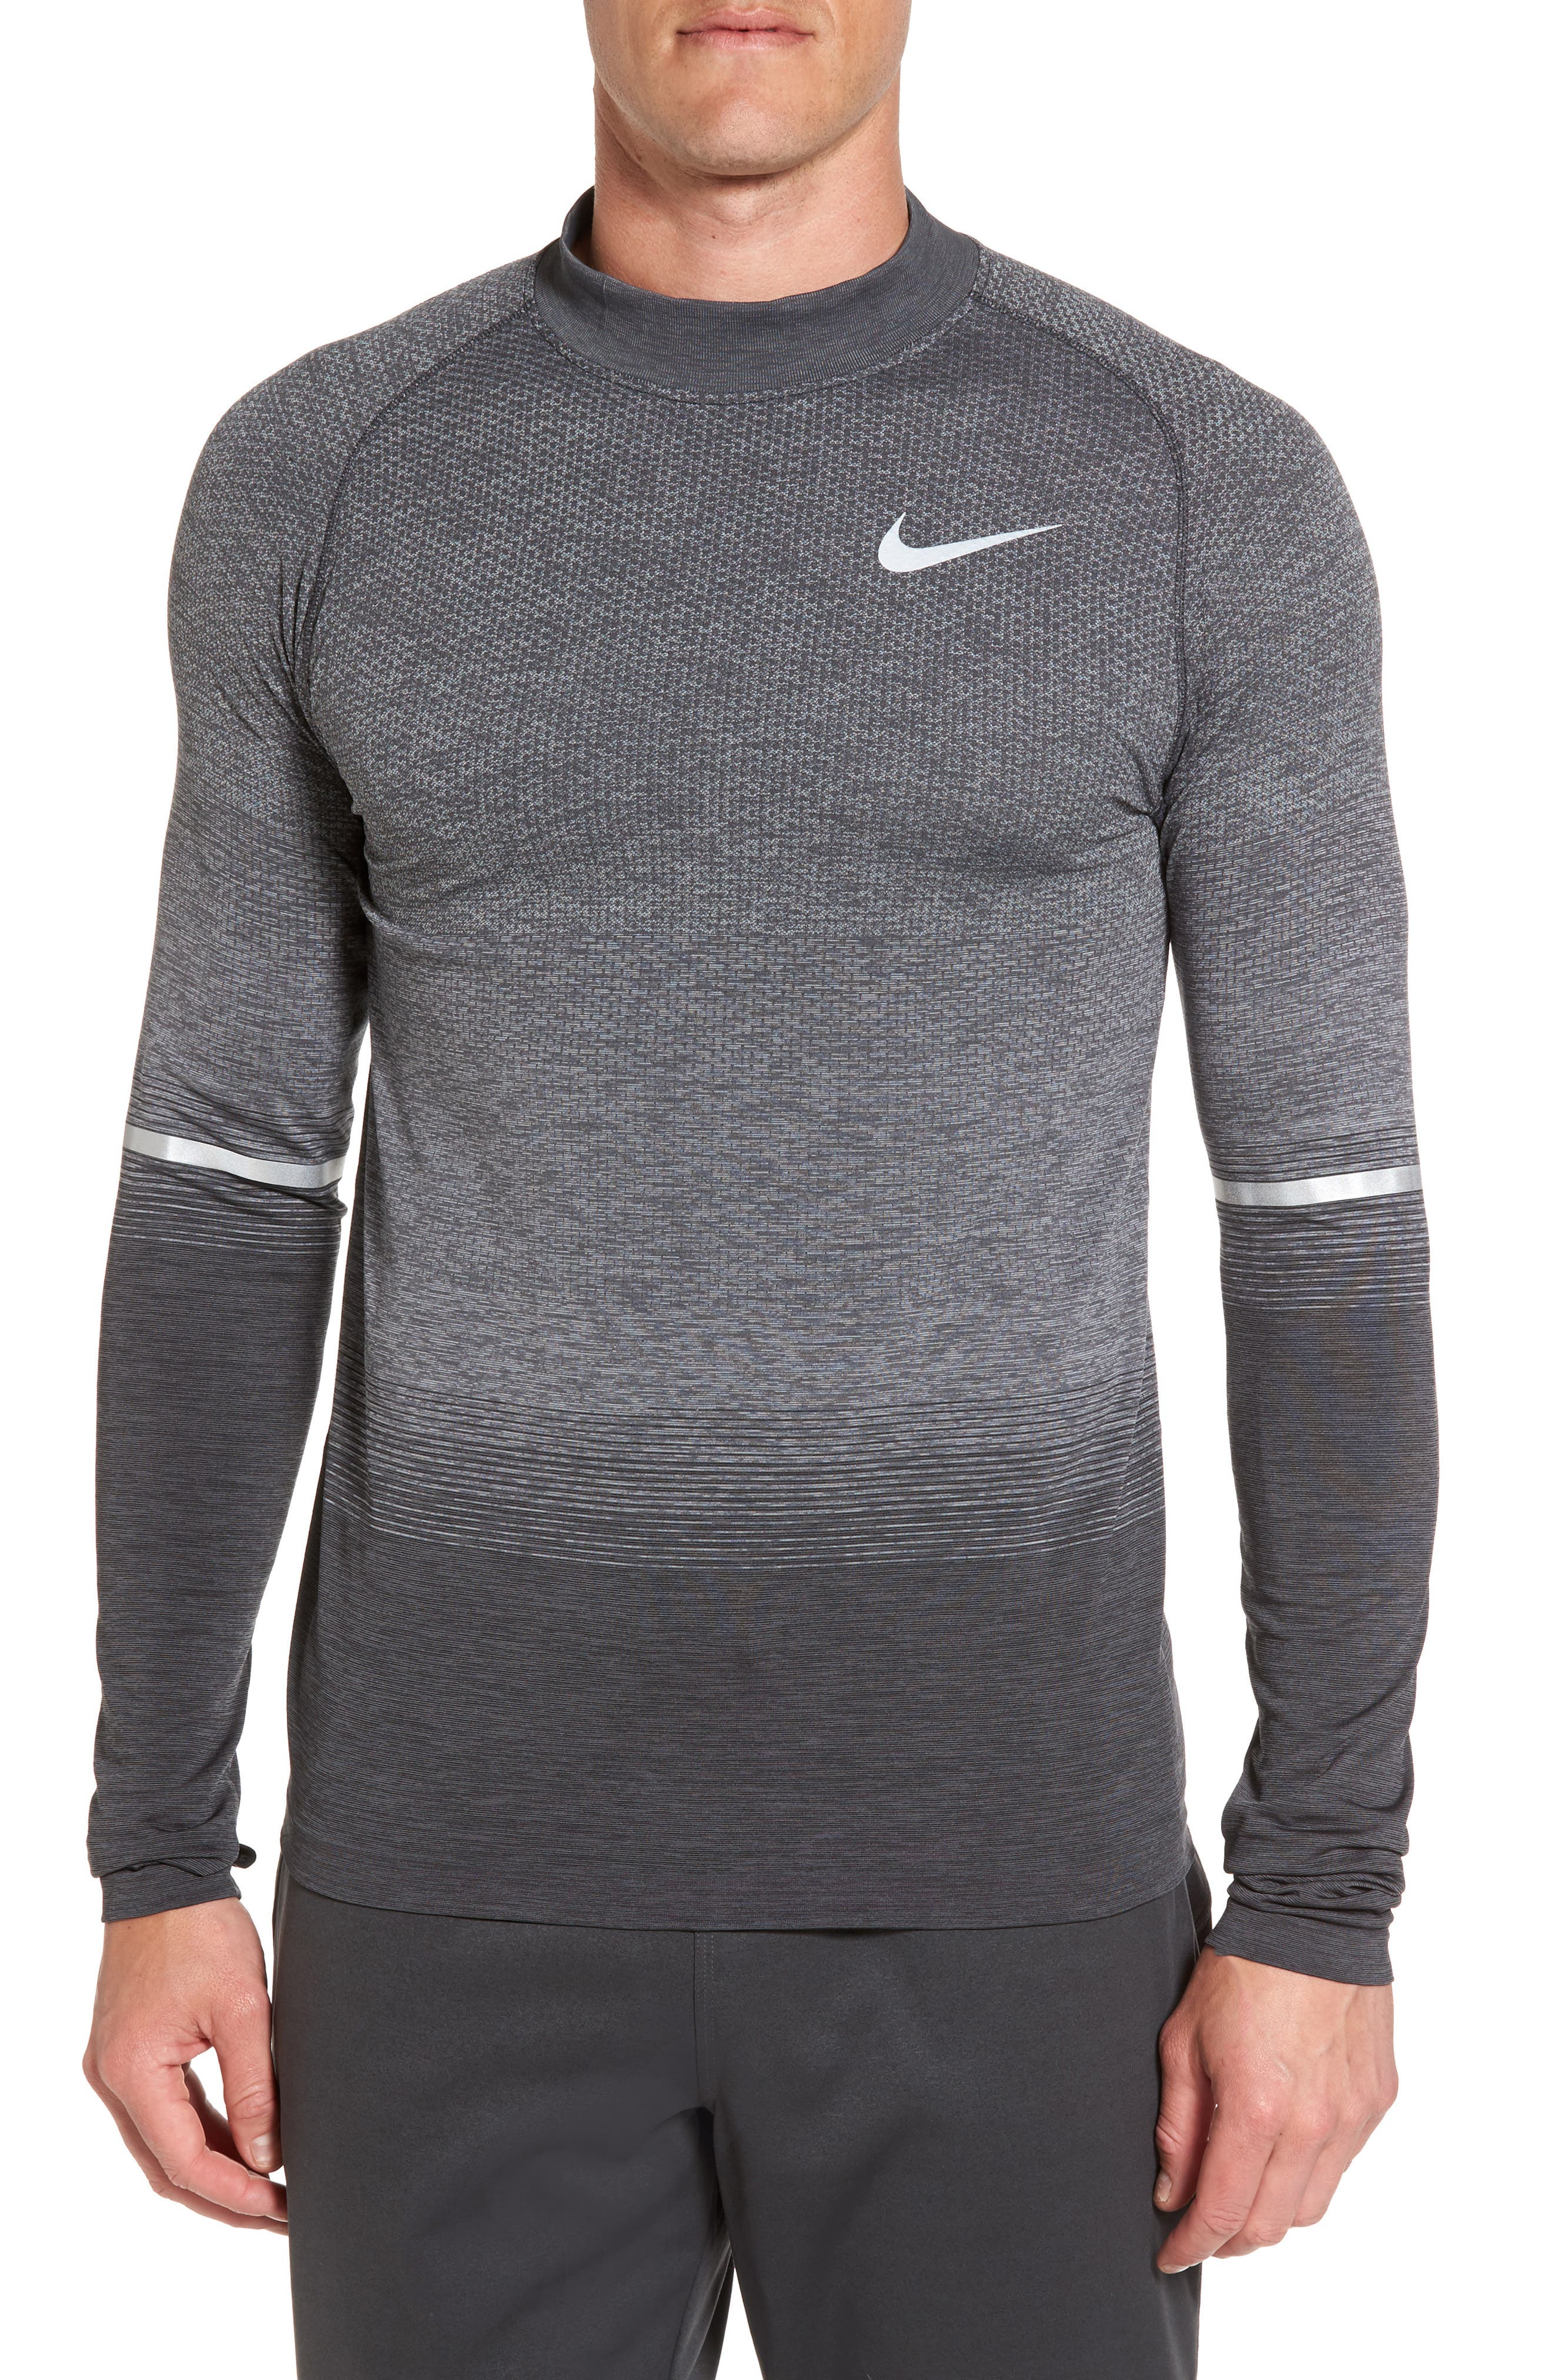 Dry Running Mock Neck Long Sleeve T-Shirt,                         Main,                         color, Anthracite/ Wolf Grey/ Grey